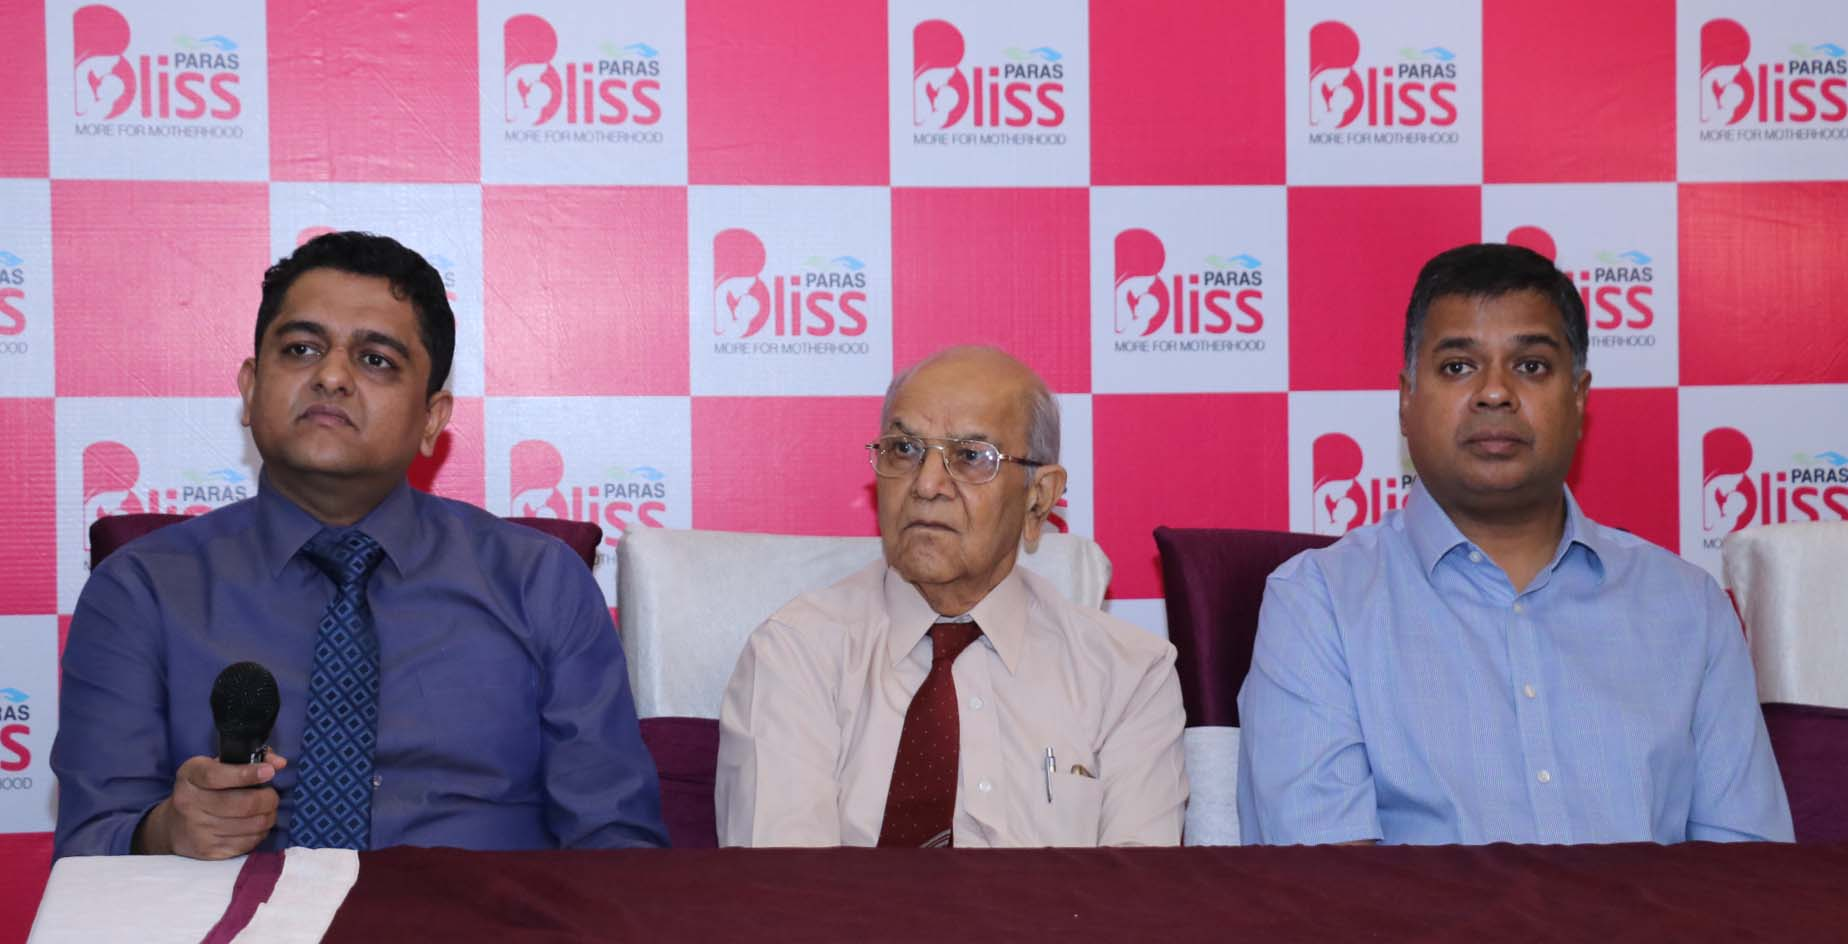 28 week premature baby gets New lease of life at Paras Bliss